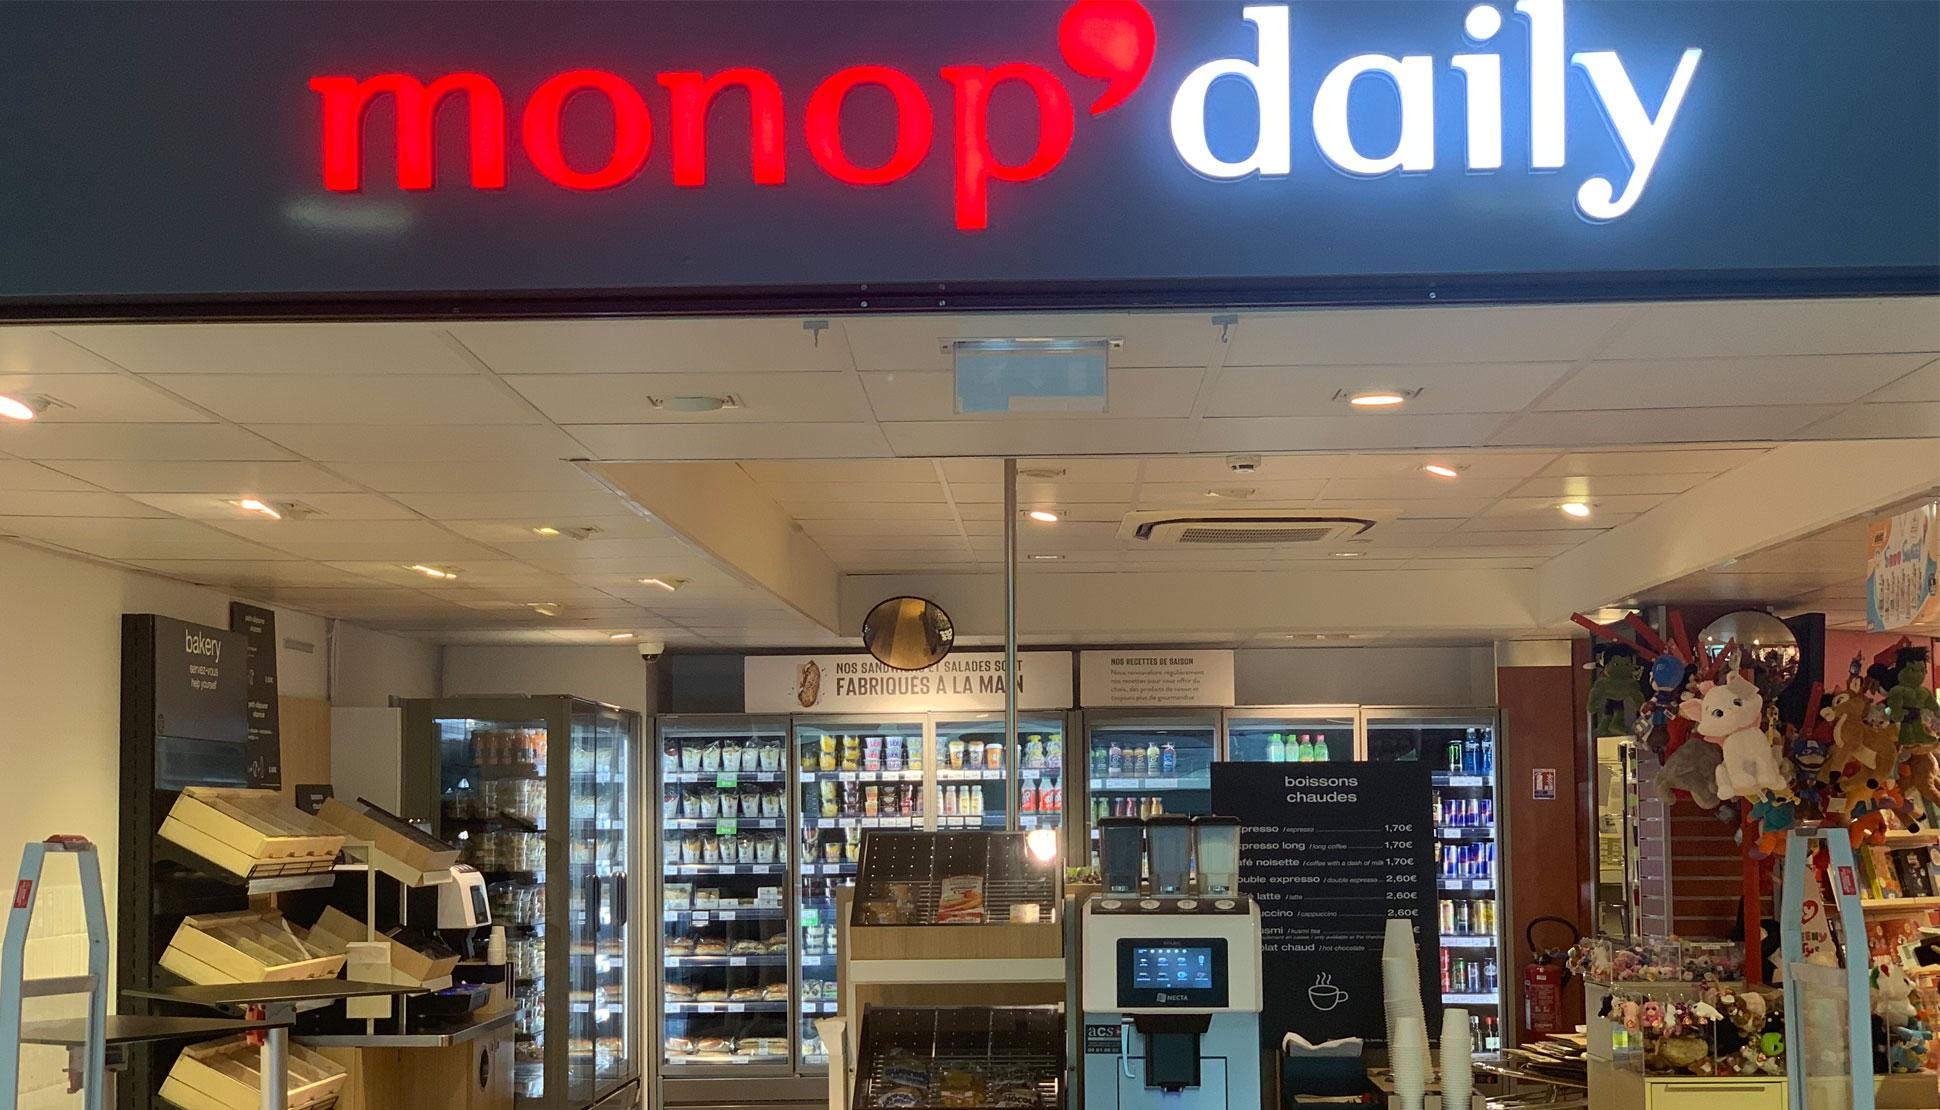 monop'daily - Hall A